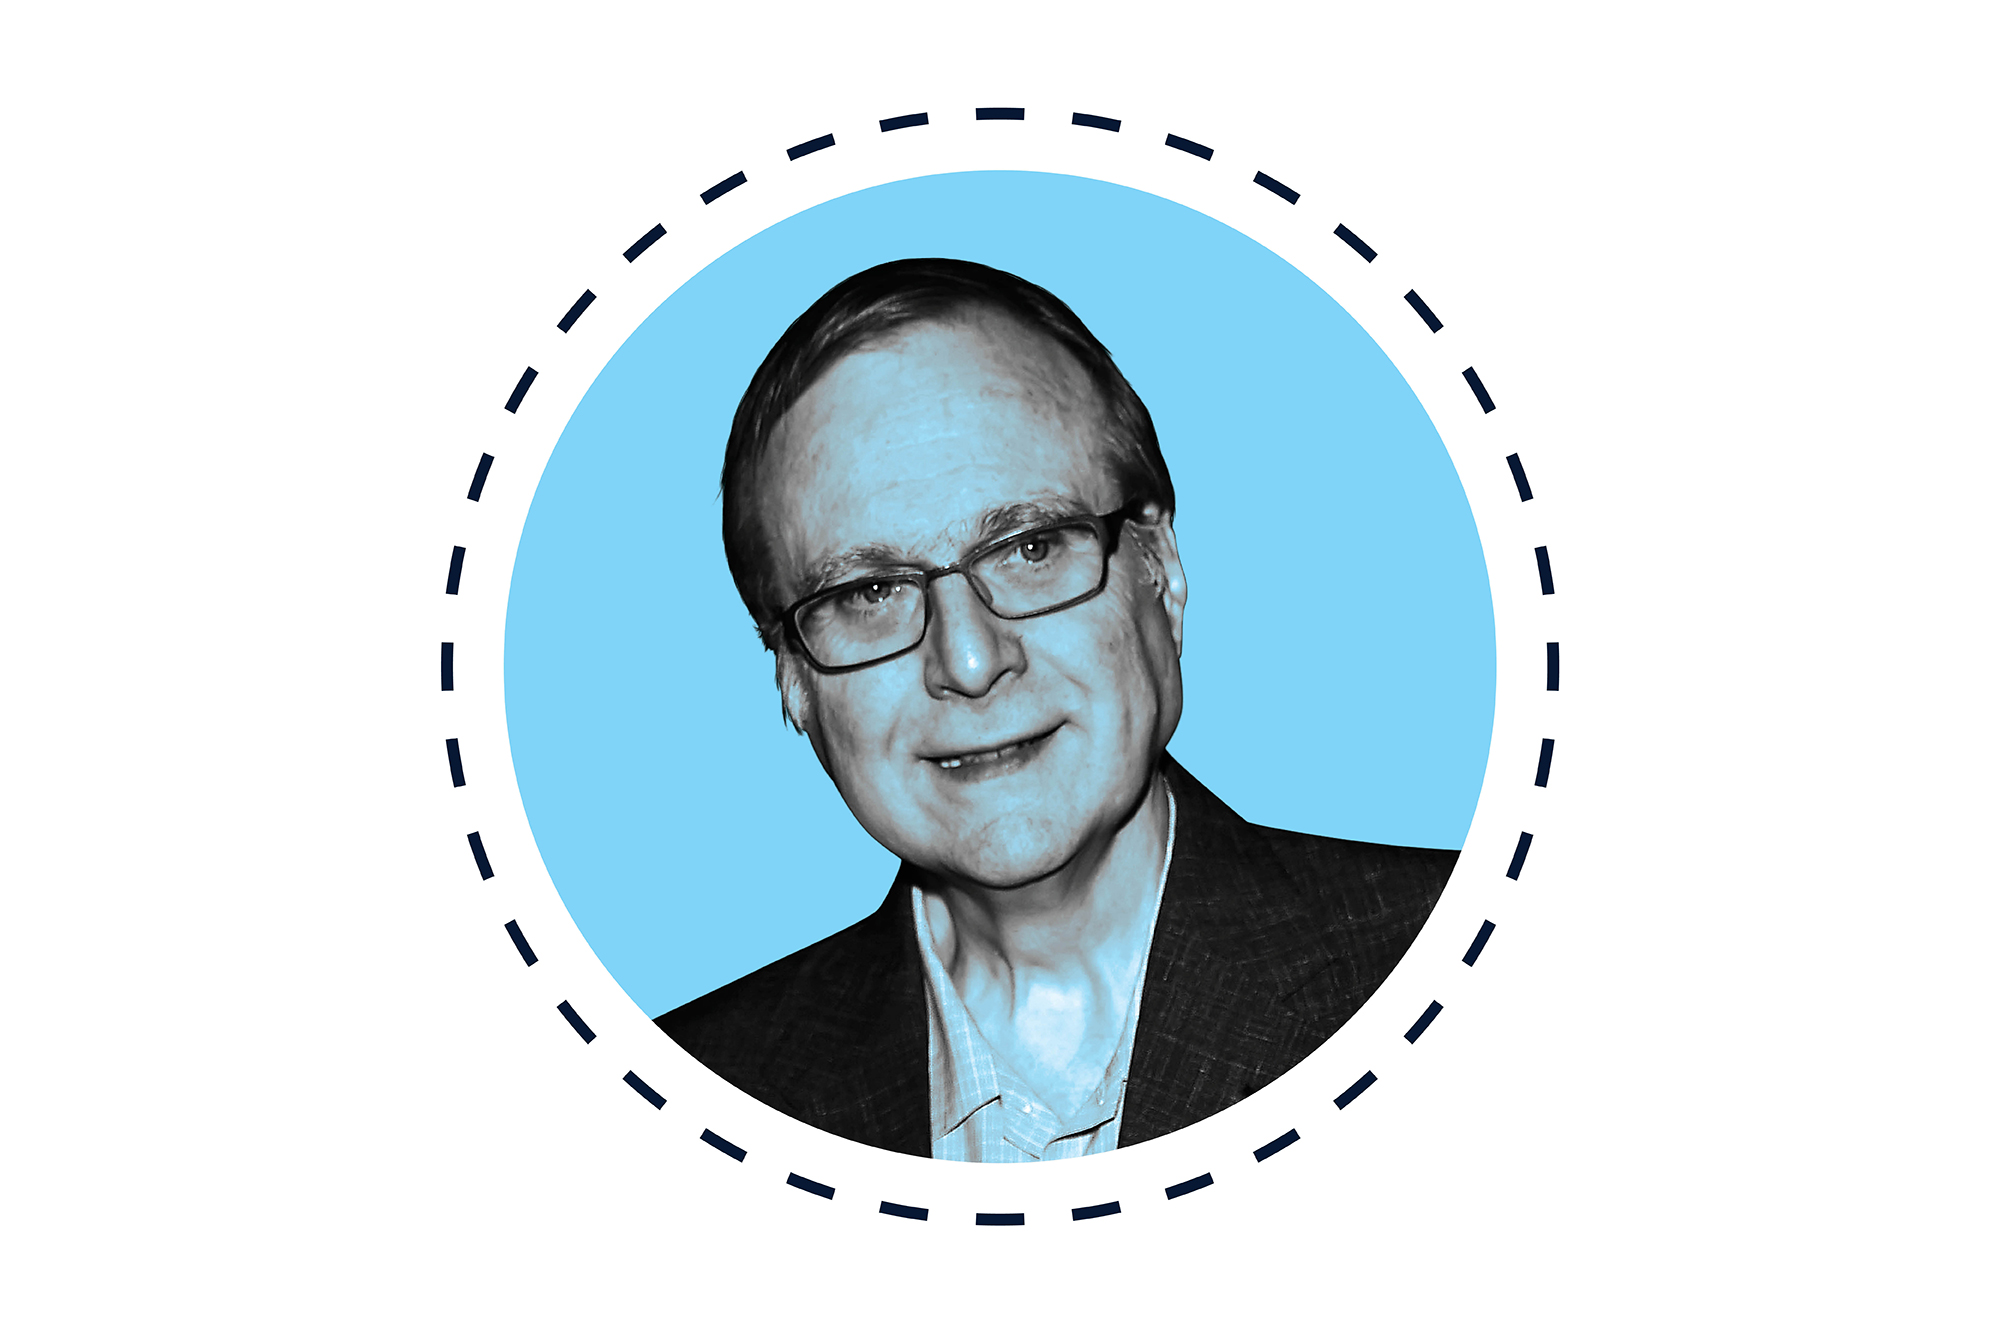 Seattle Seahawks owner: Paul Allen net worth, political donations